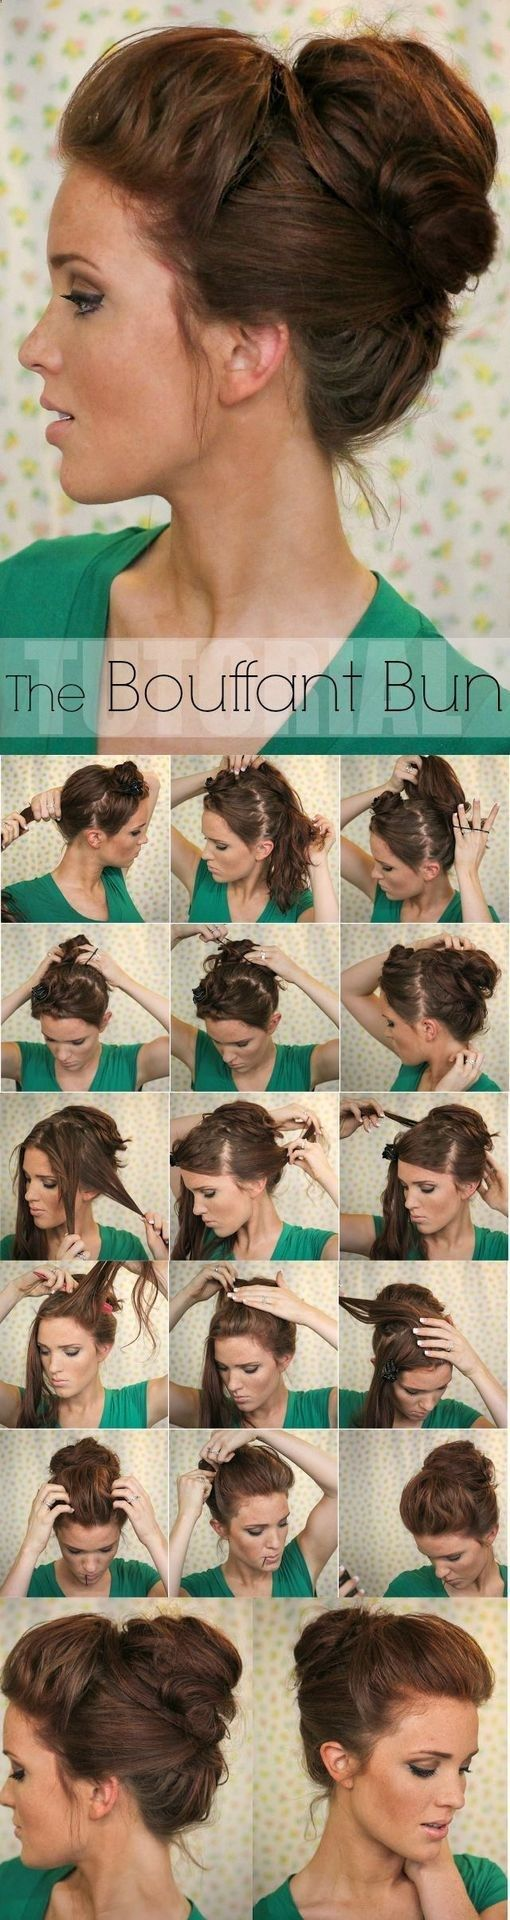 Super Easy Knotted Bun Updo and Simple Bun Hairstyle Tutorials.